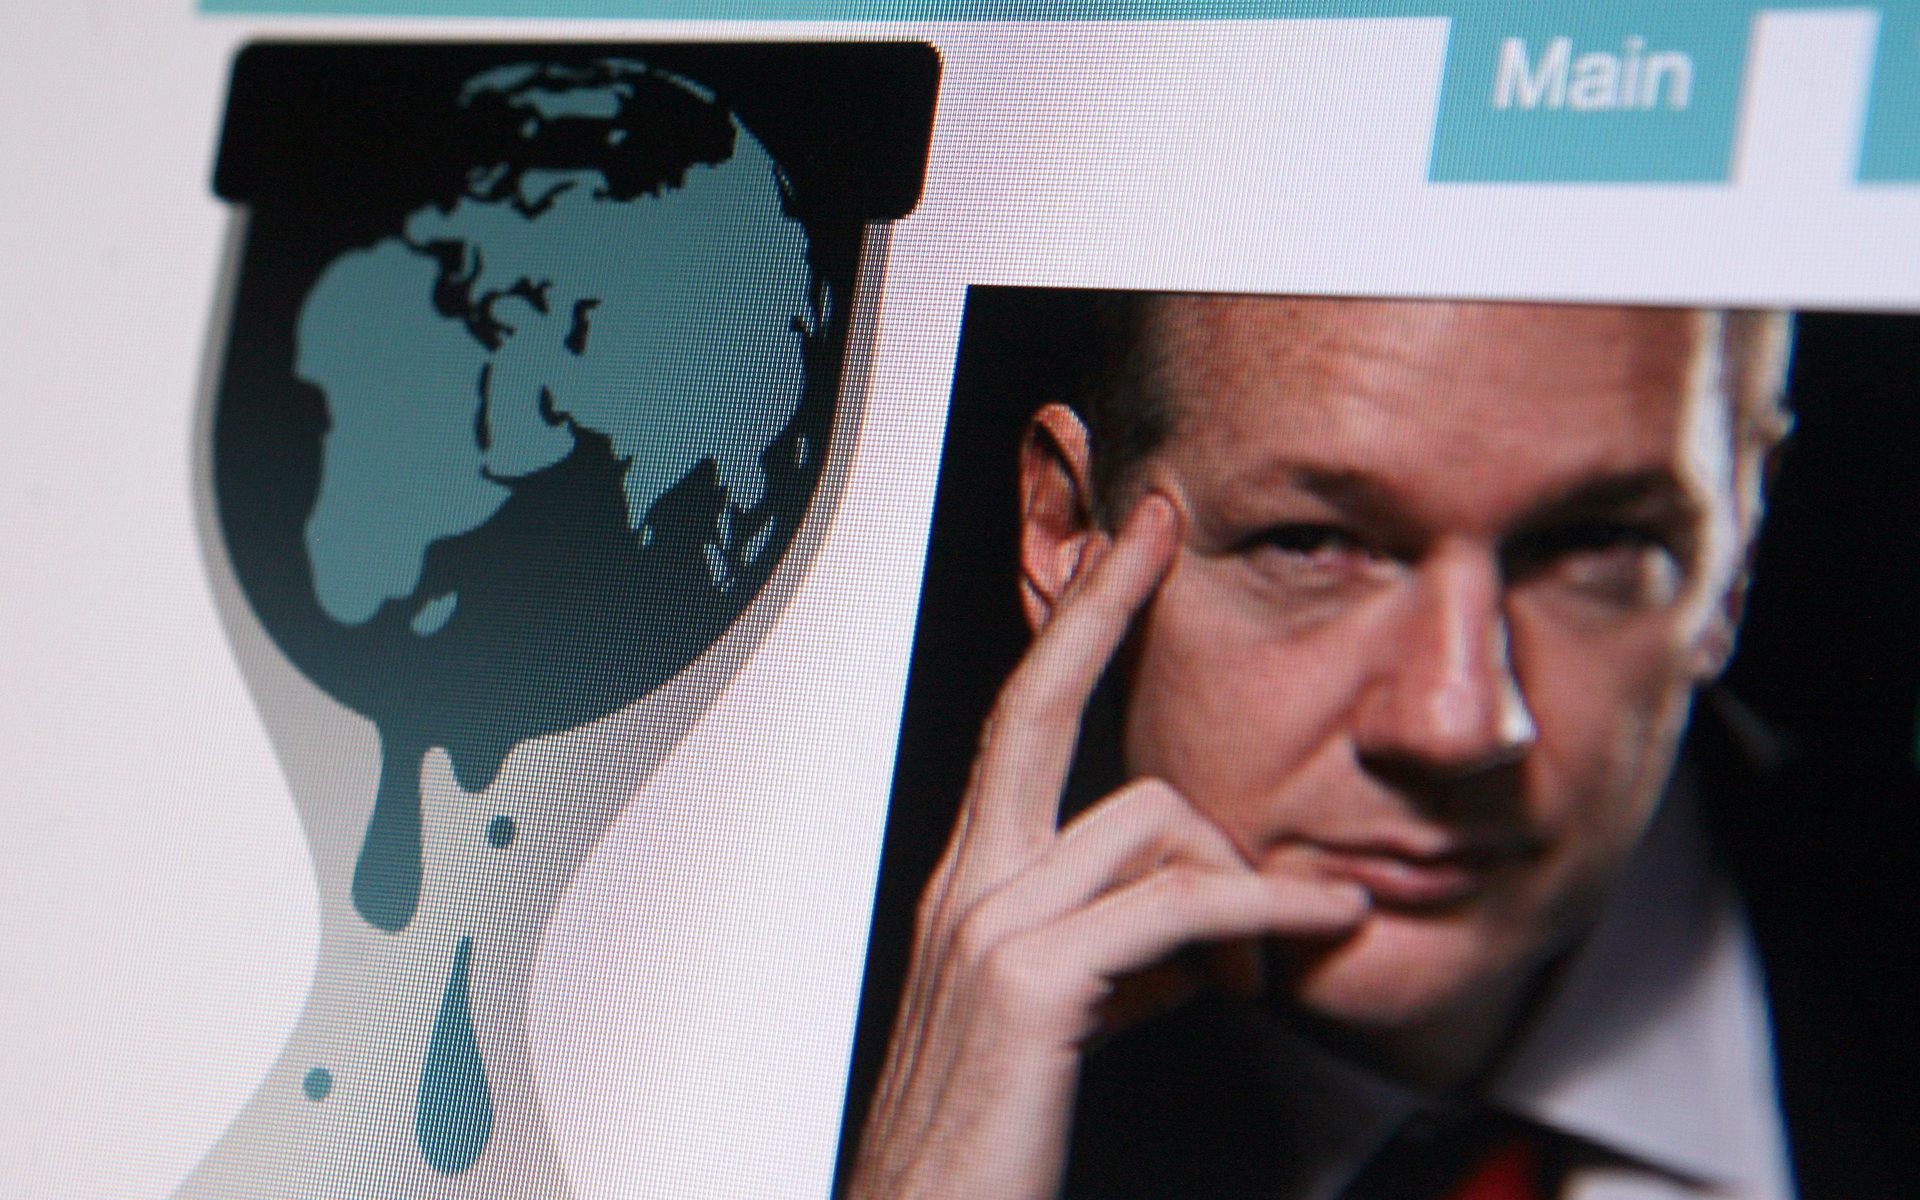 Who Is Ola Bini? Swedish Developer Who Visited Assange Arrested In Ecuador